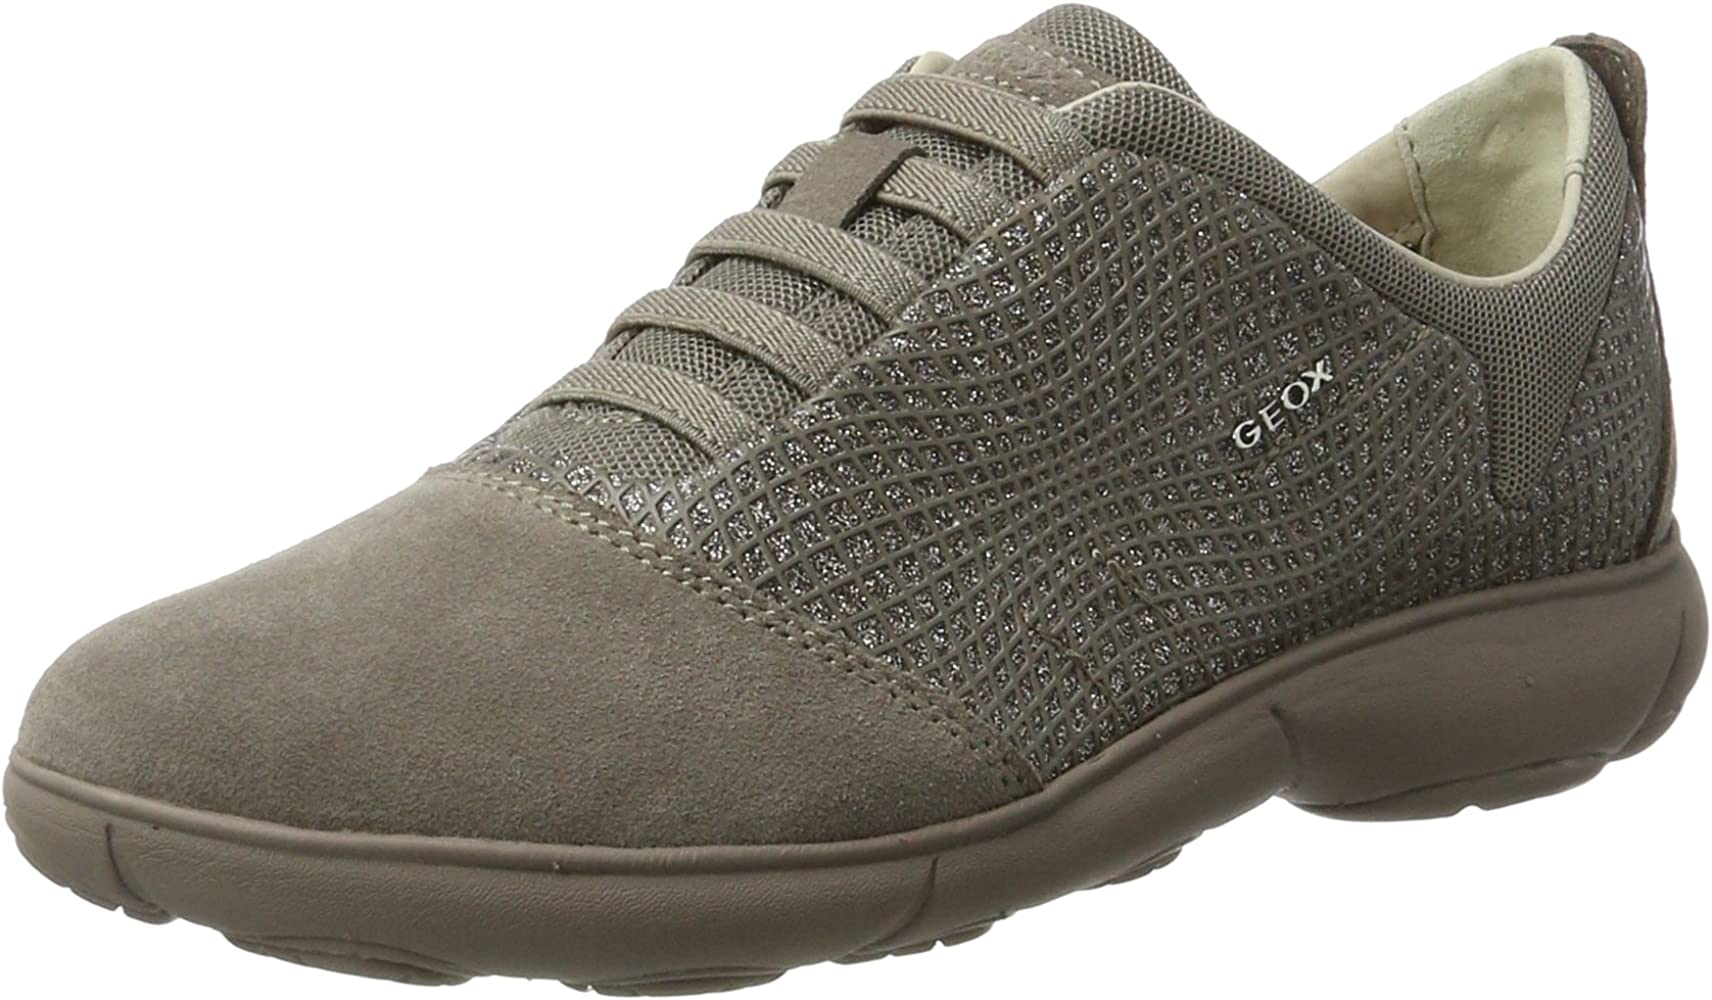 Geox Women's D Nebula A Sneakers, Taupe